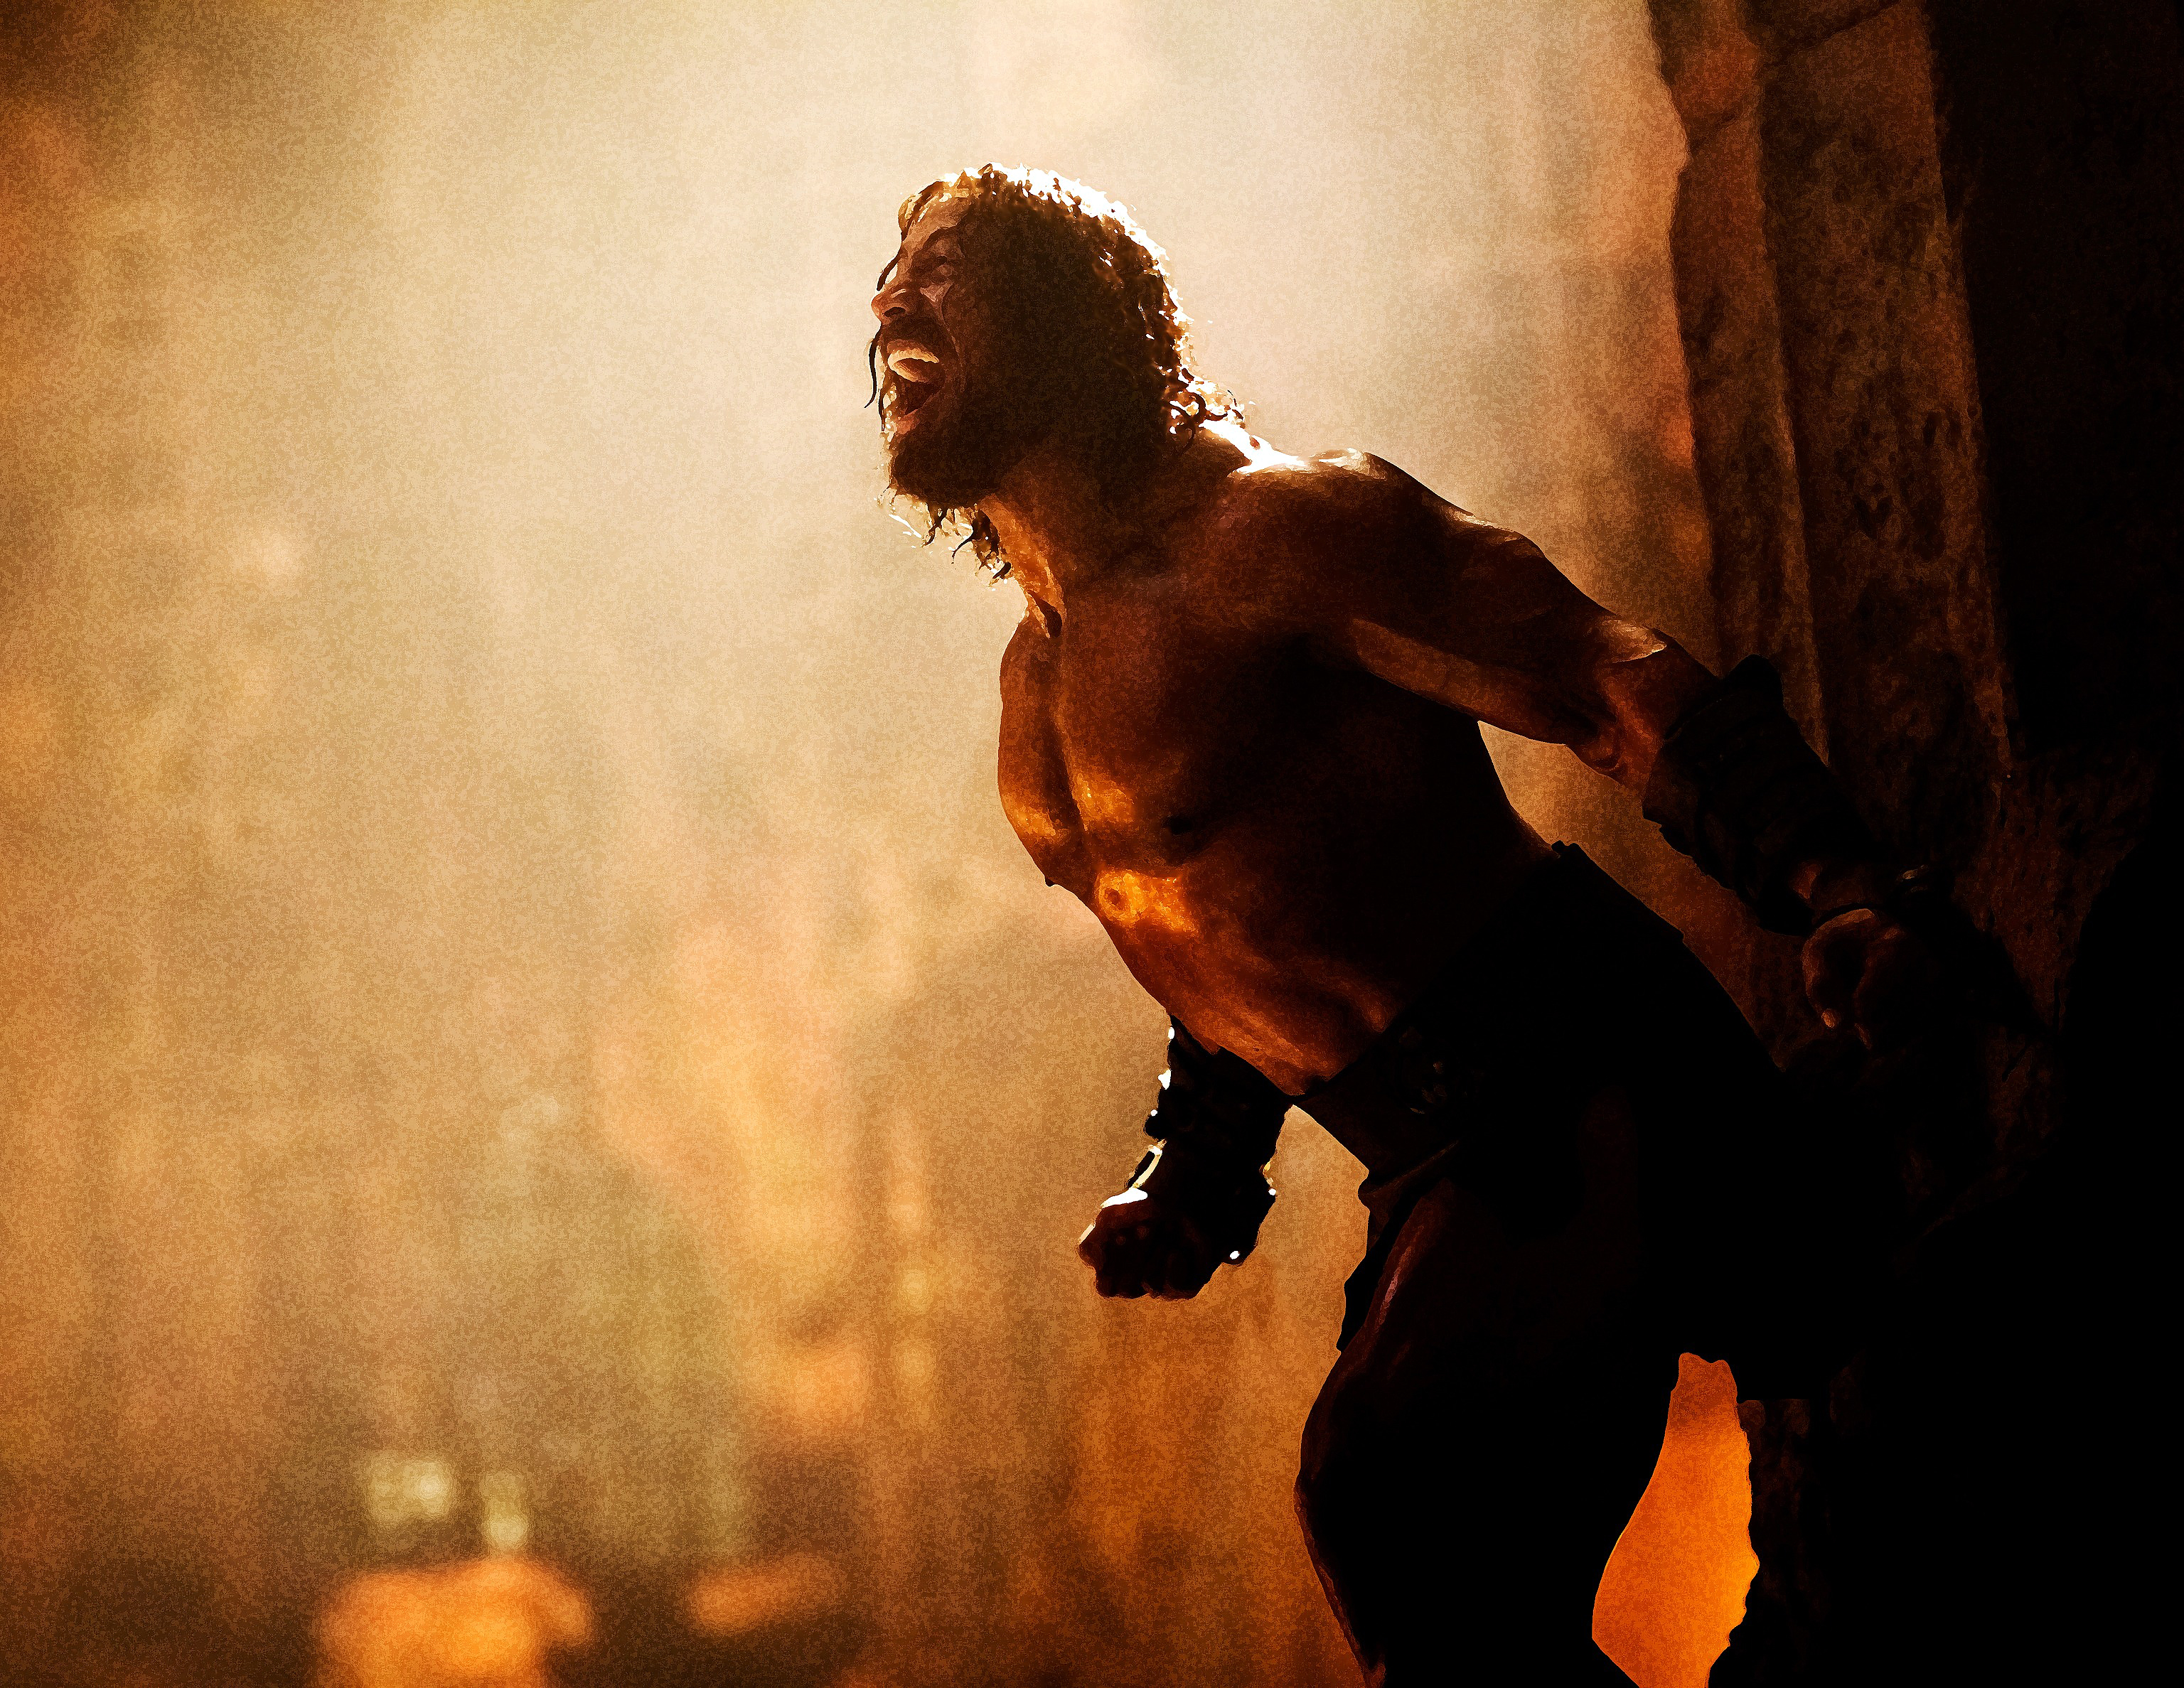 Hercules-Official-Poster-Banner-PROMO-PHOTOS-25MARCO2014-02